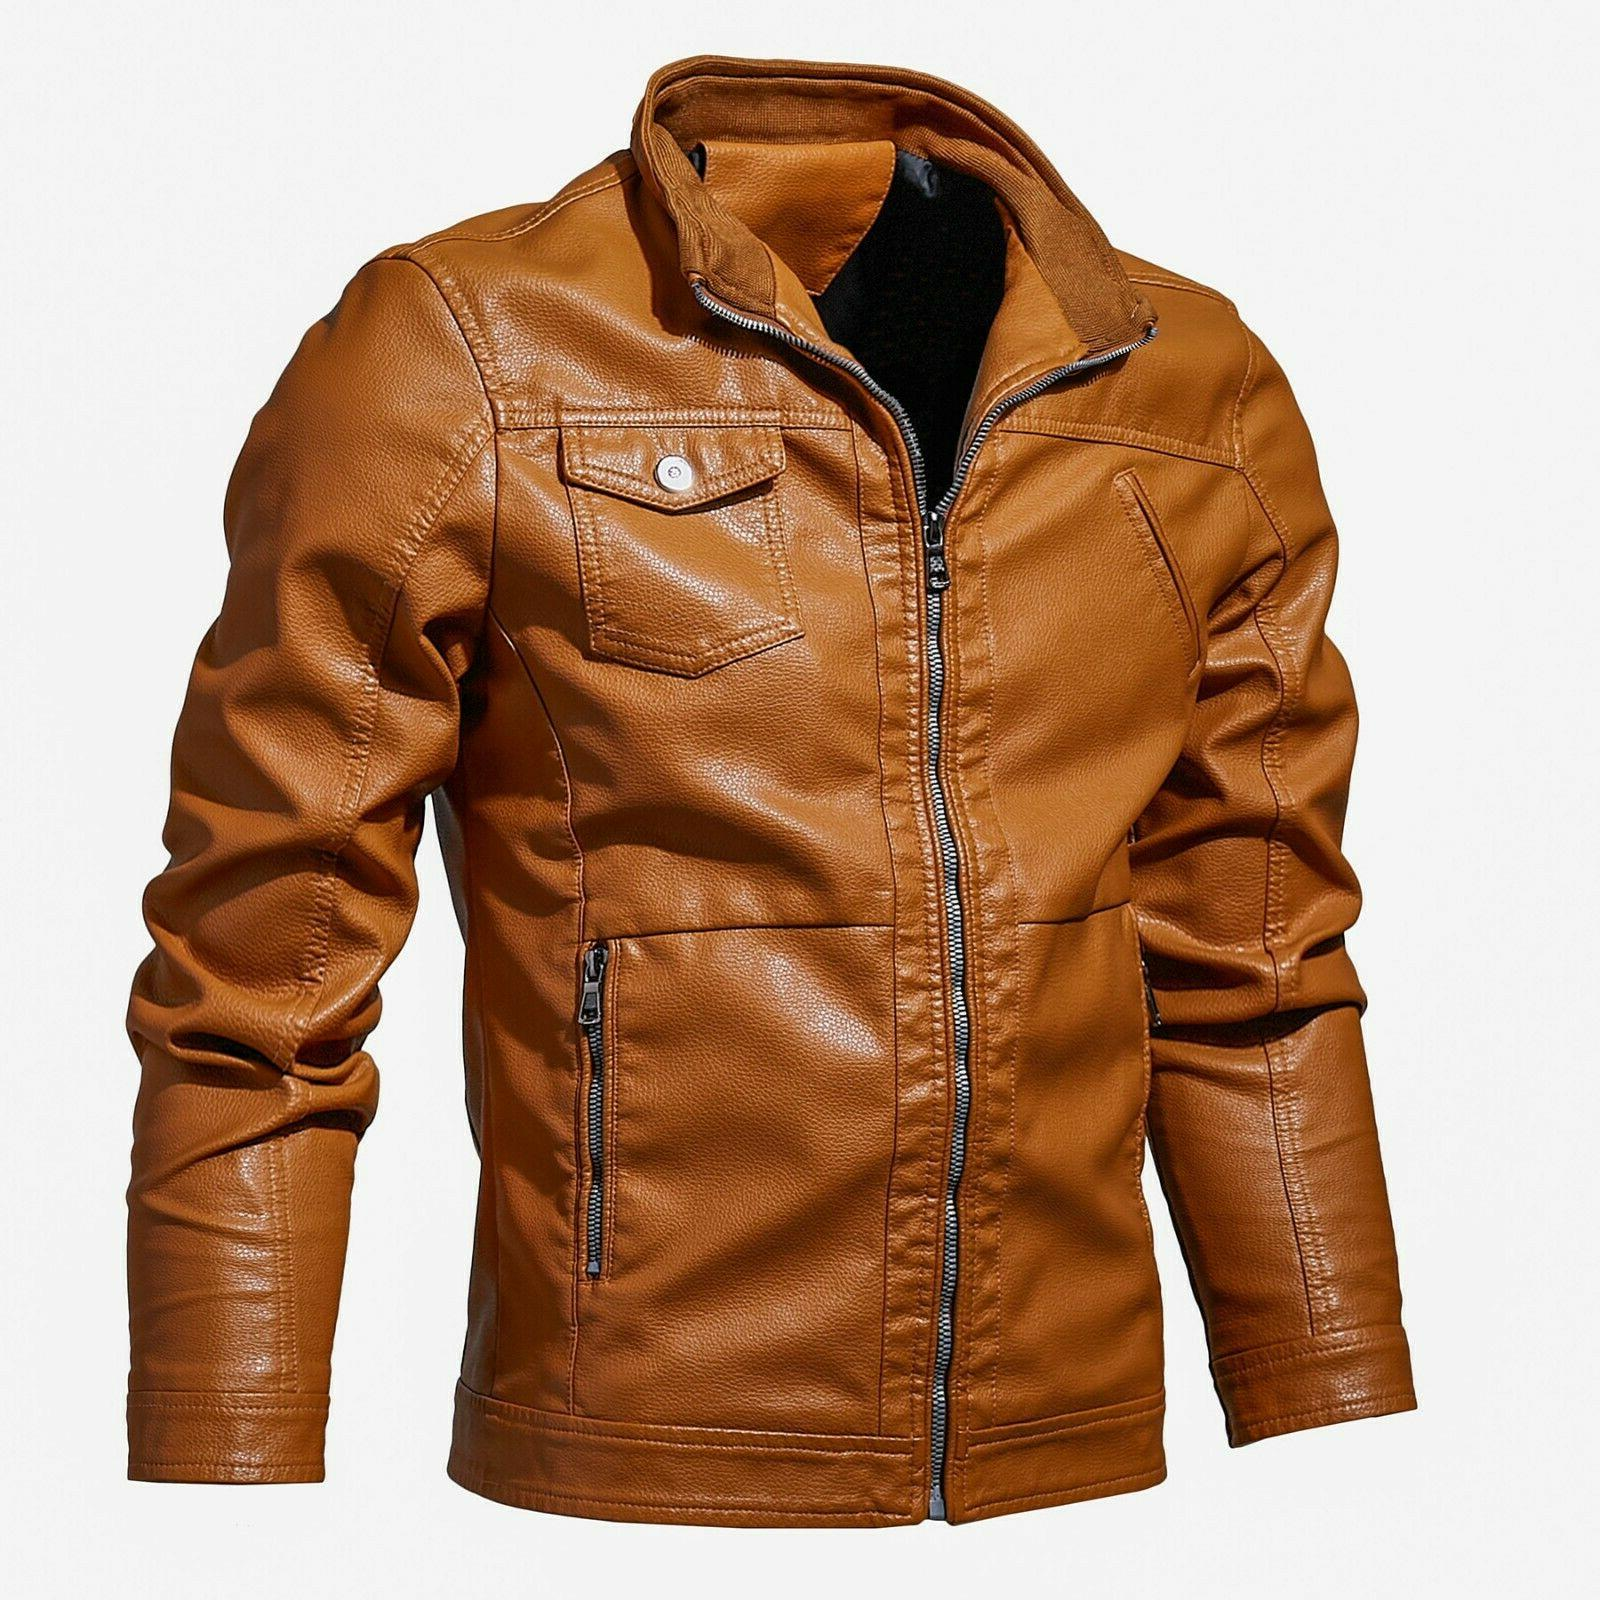 2019 hot selling mens motorcycle leather jackets